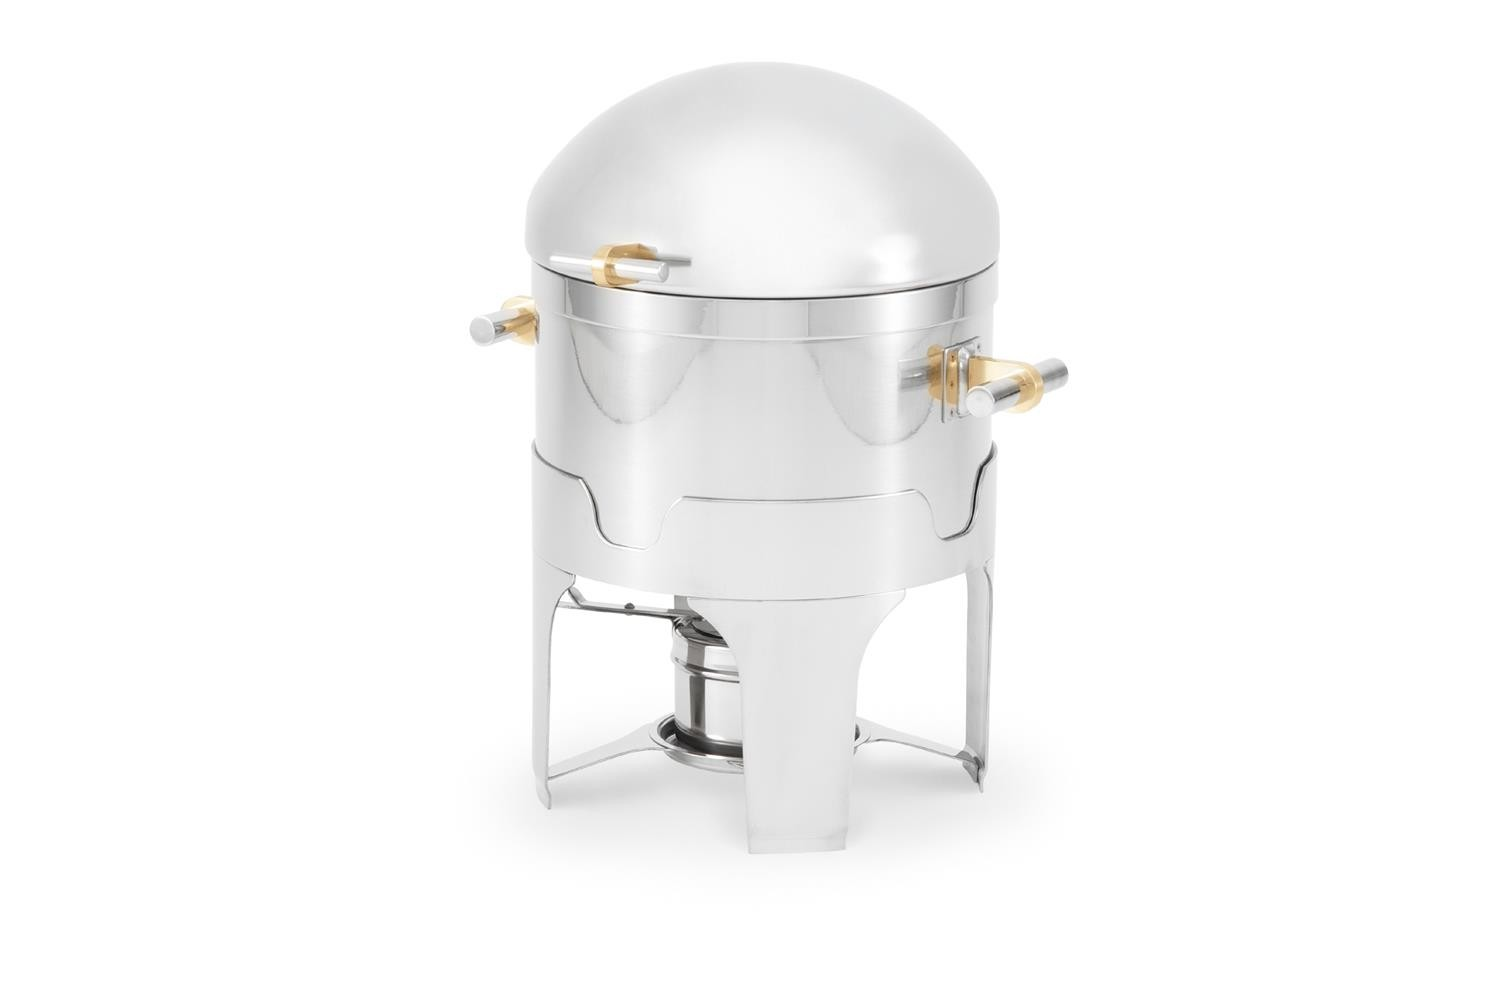 Vollrath 46095 New York New York Gravy / Sauce Chafer 2-1/2 Qt.